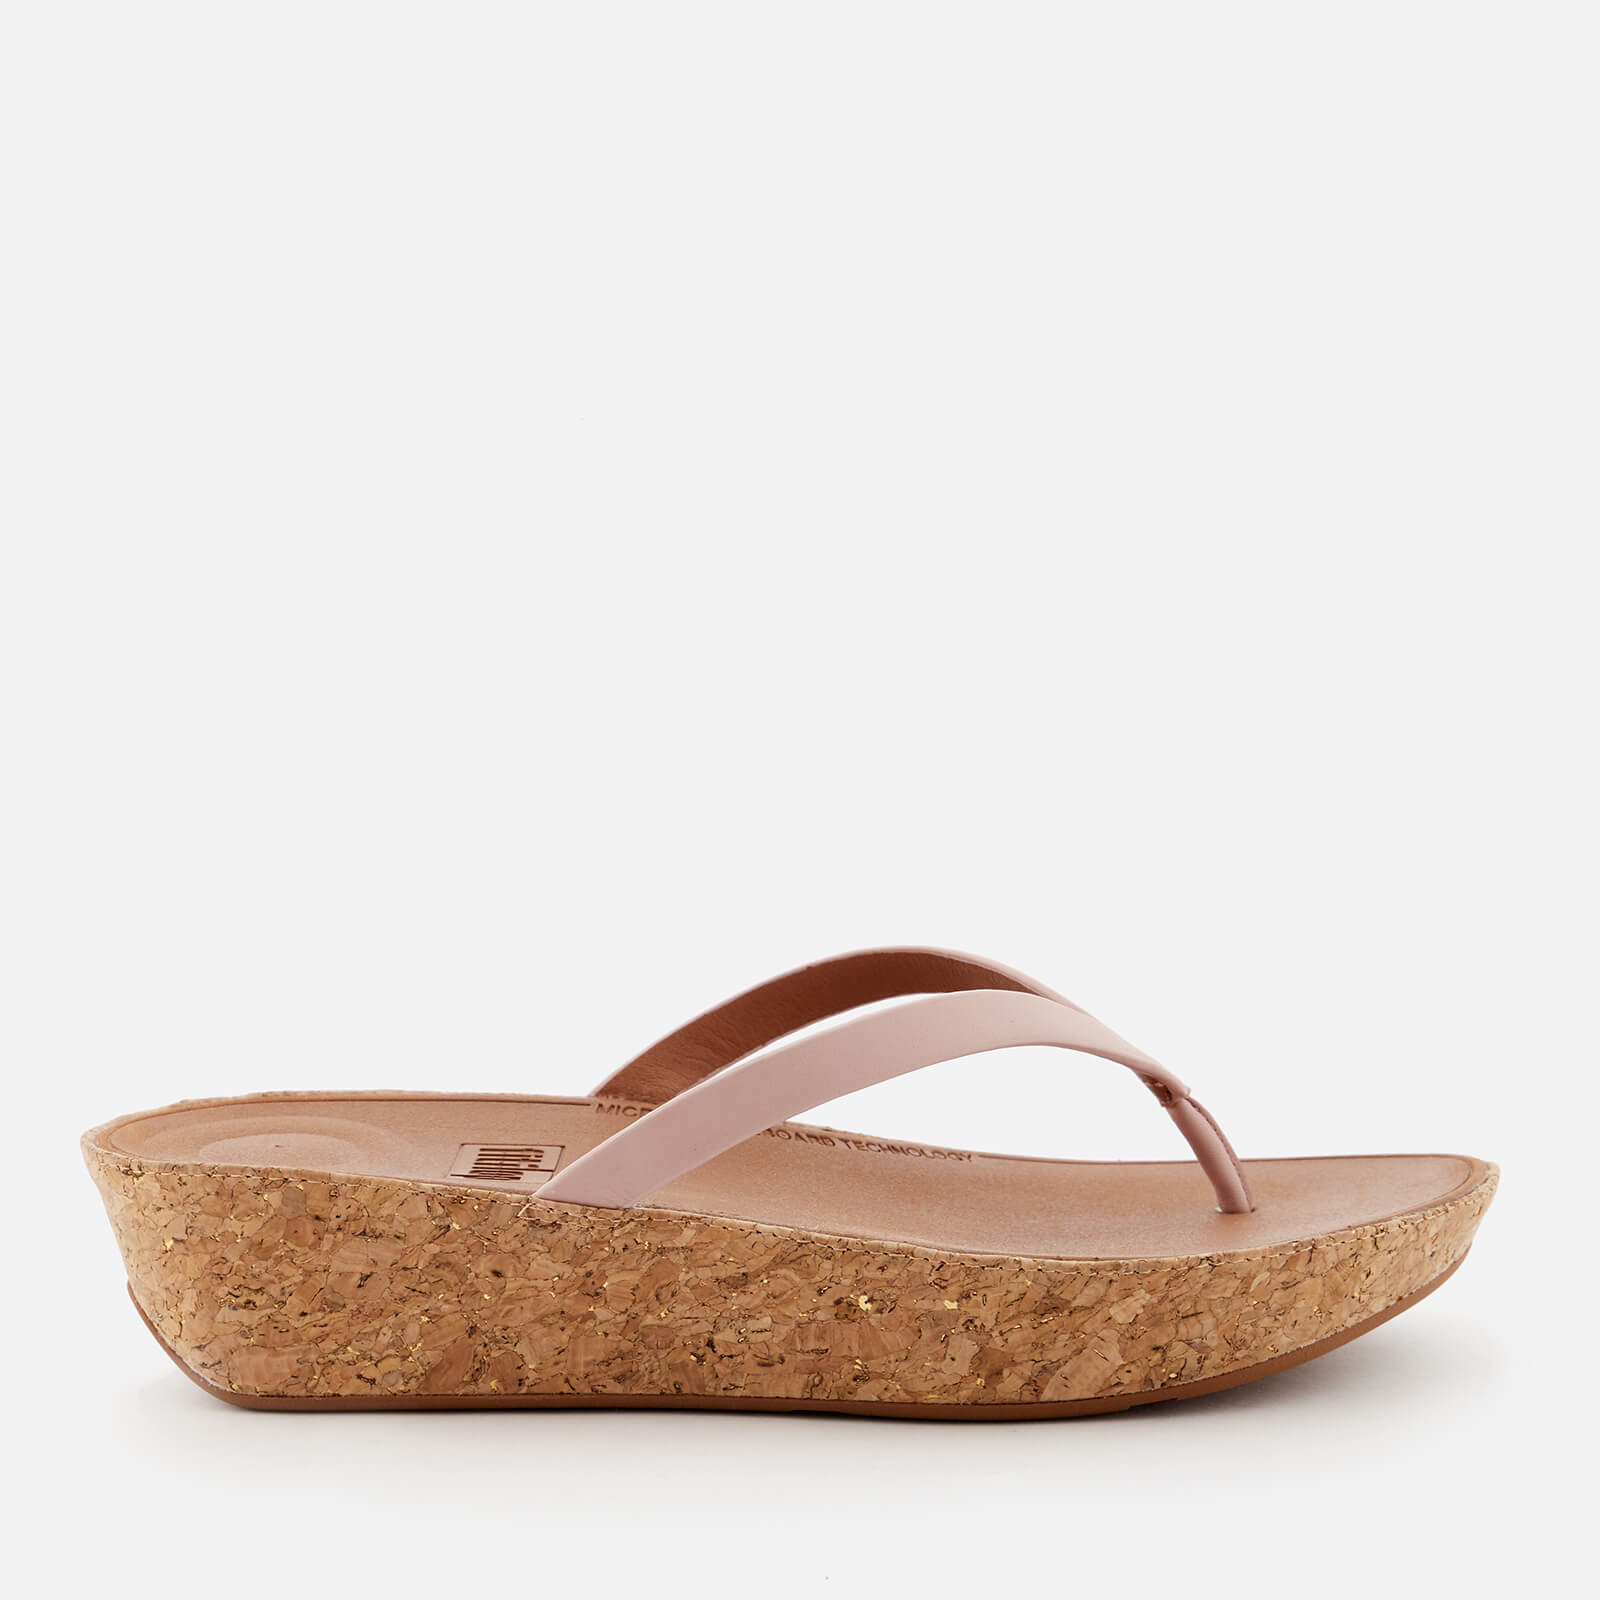 eb4cce133 FitFlop Women s Linny Wedged Toe Post Sandals - Dusky Pink